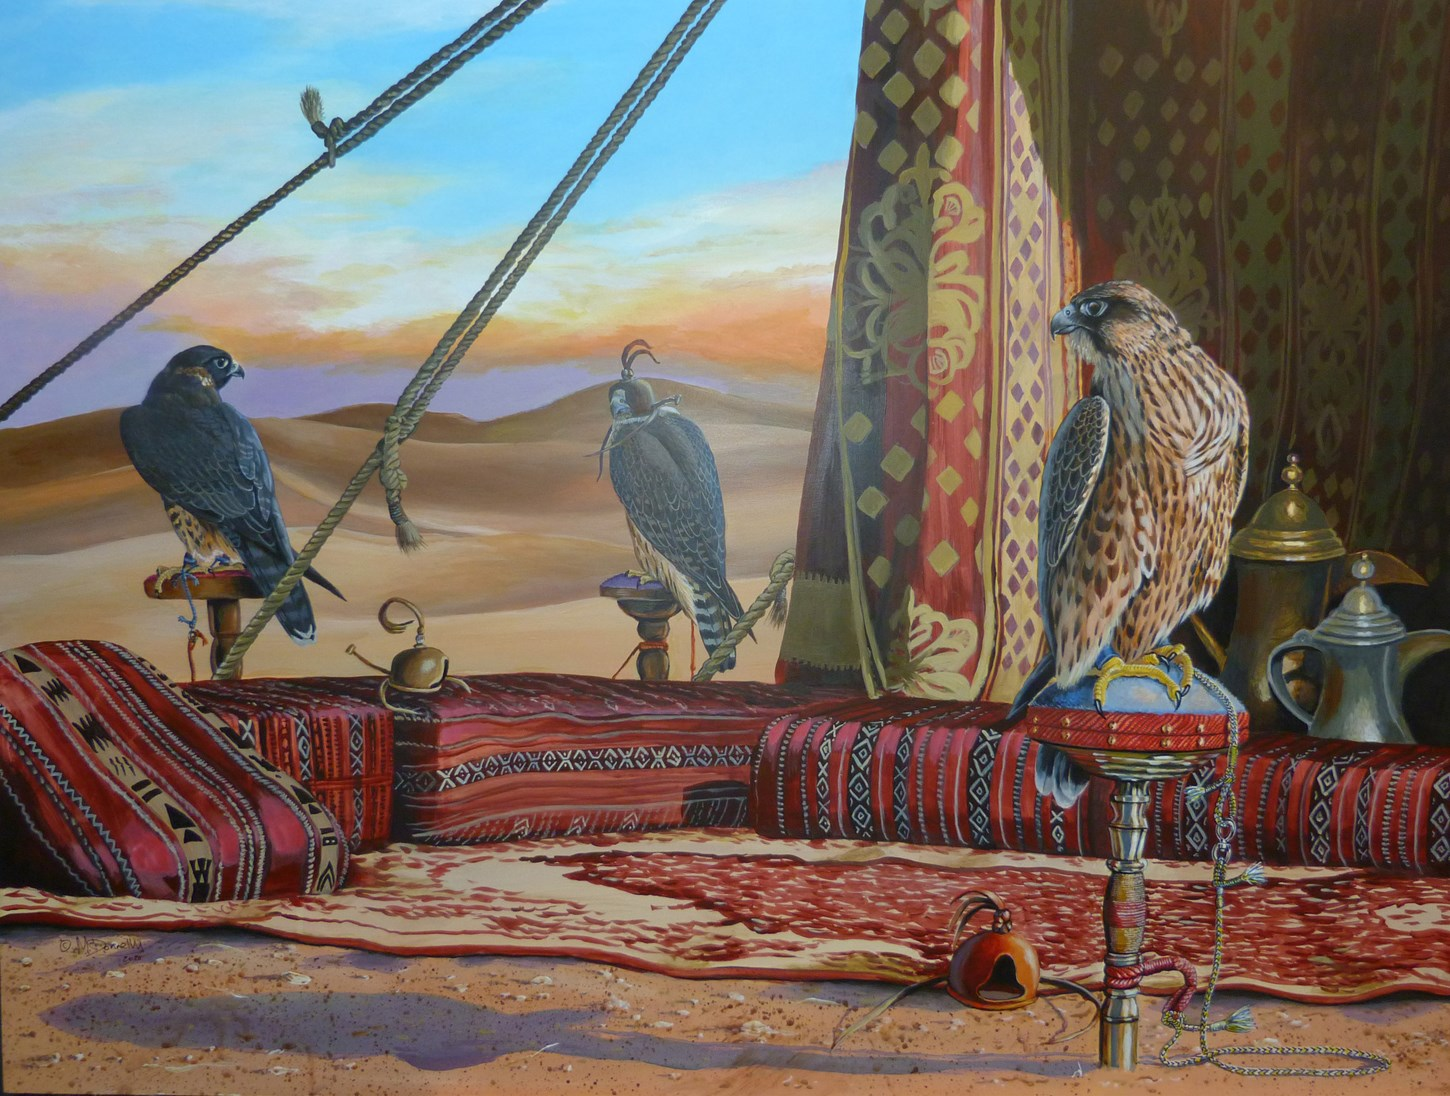 Arab Tent with Falcons